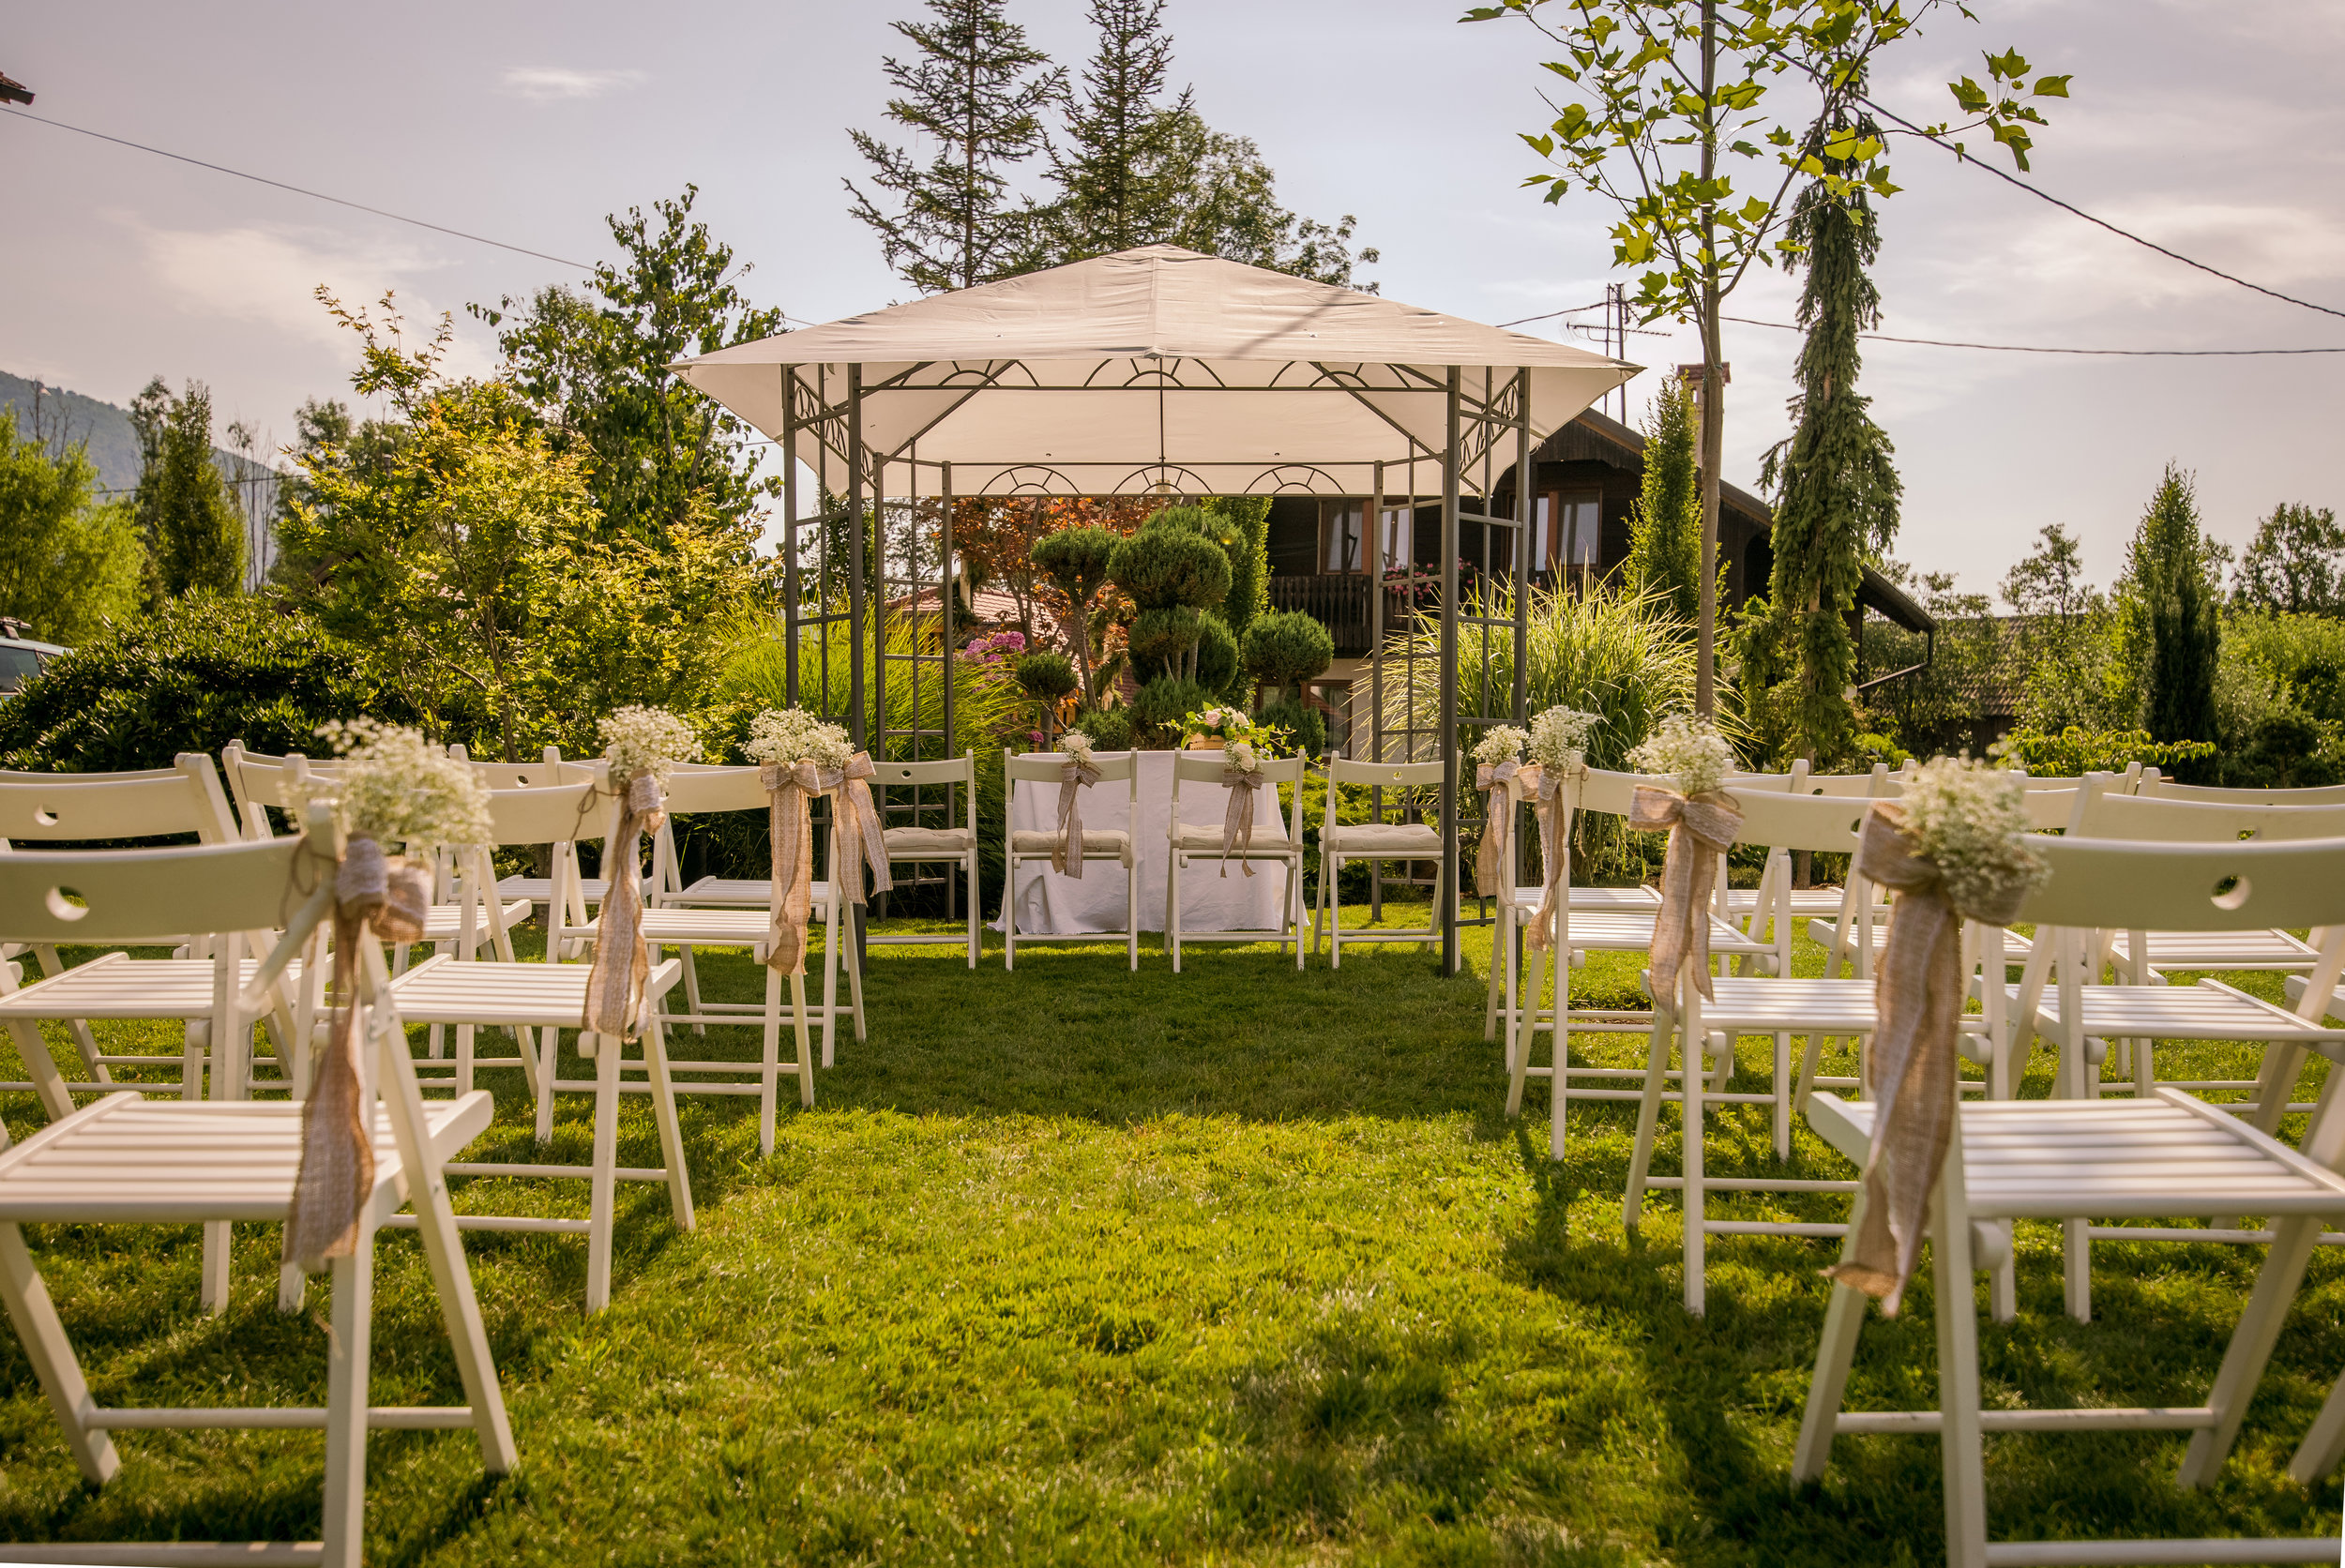 outdoor-setup-for-wedding-reception-PCPHQJP.JPG